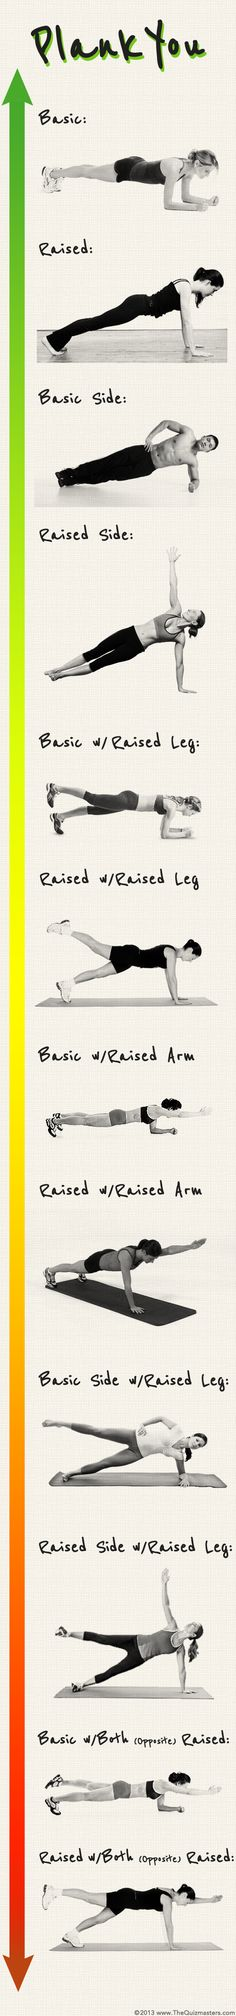 PLANK YOU - Plank Infographic (Easy to Hard). nice but something: A new breakthrough 15 minute Workout App to guide you with Day-by-Day diets and fitness workouts that will transform your body into New You: strong, slim and fit!